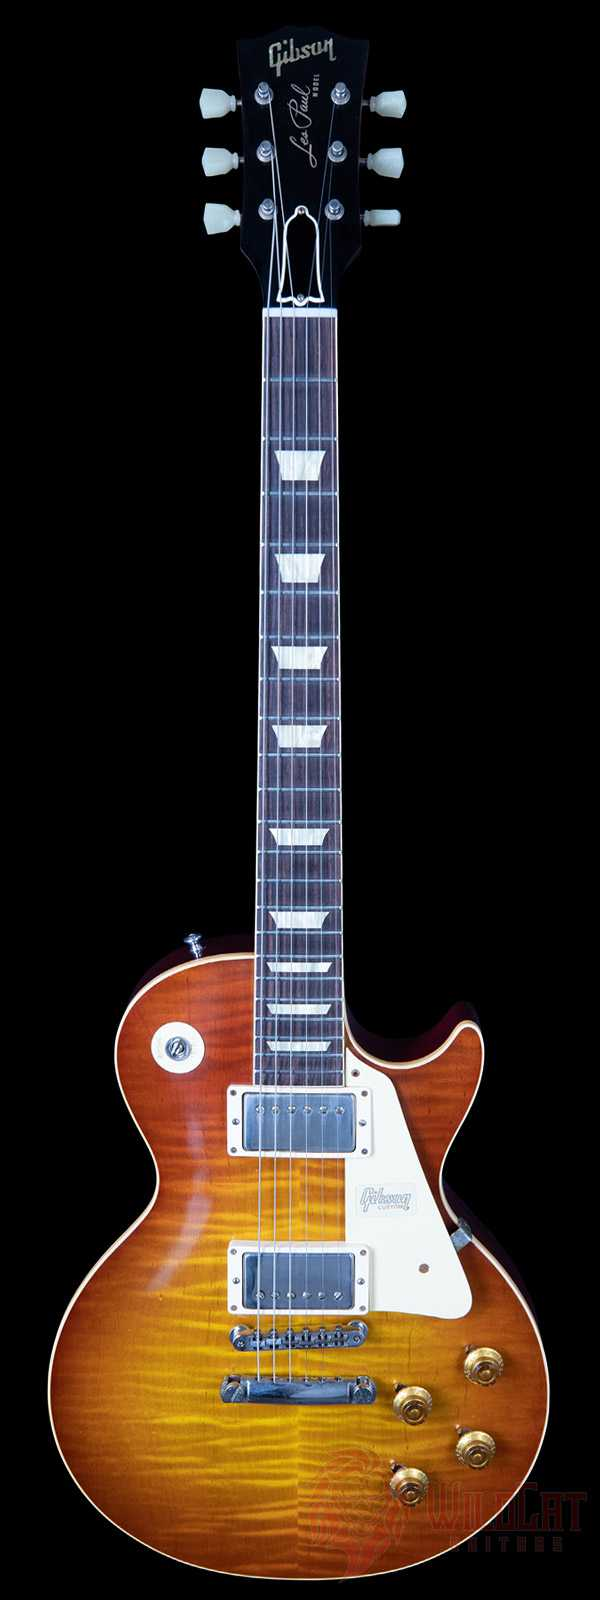 Gibson Custom Shop 60th Anniversary 1959 Les Paul Std Bolivian Sunrise VOS Used